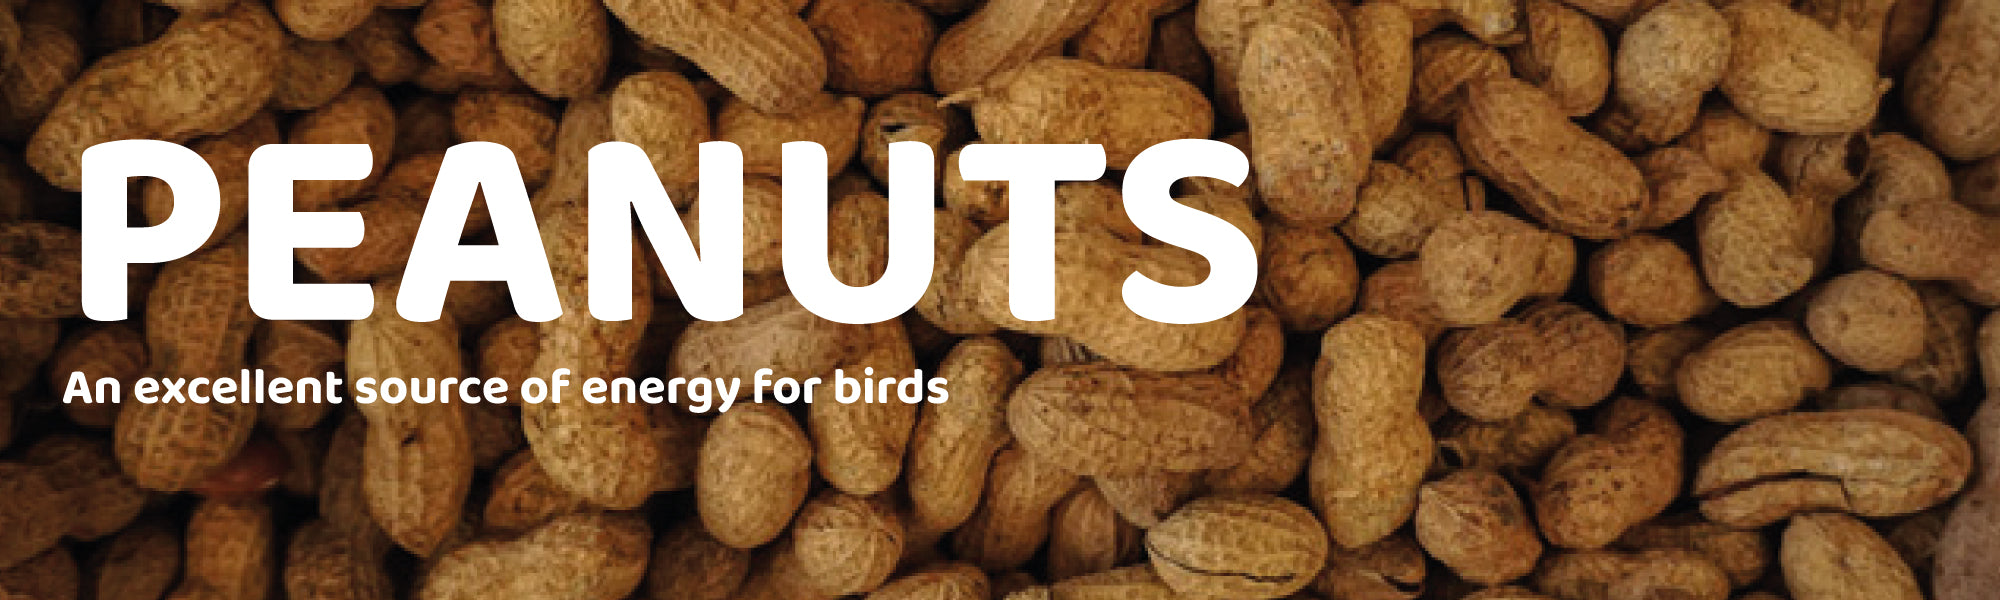 Peanuts an excellent source of energy for birds